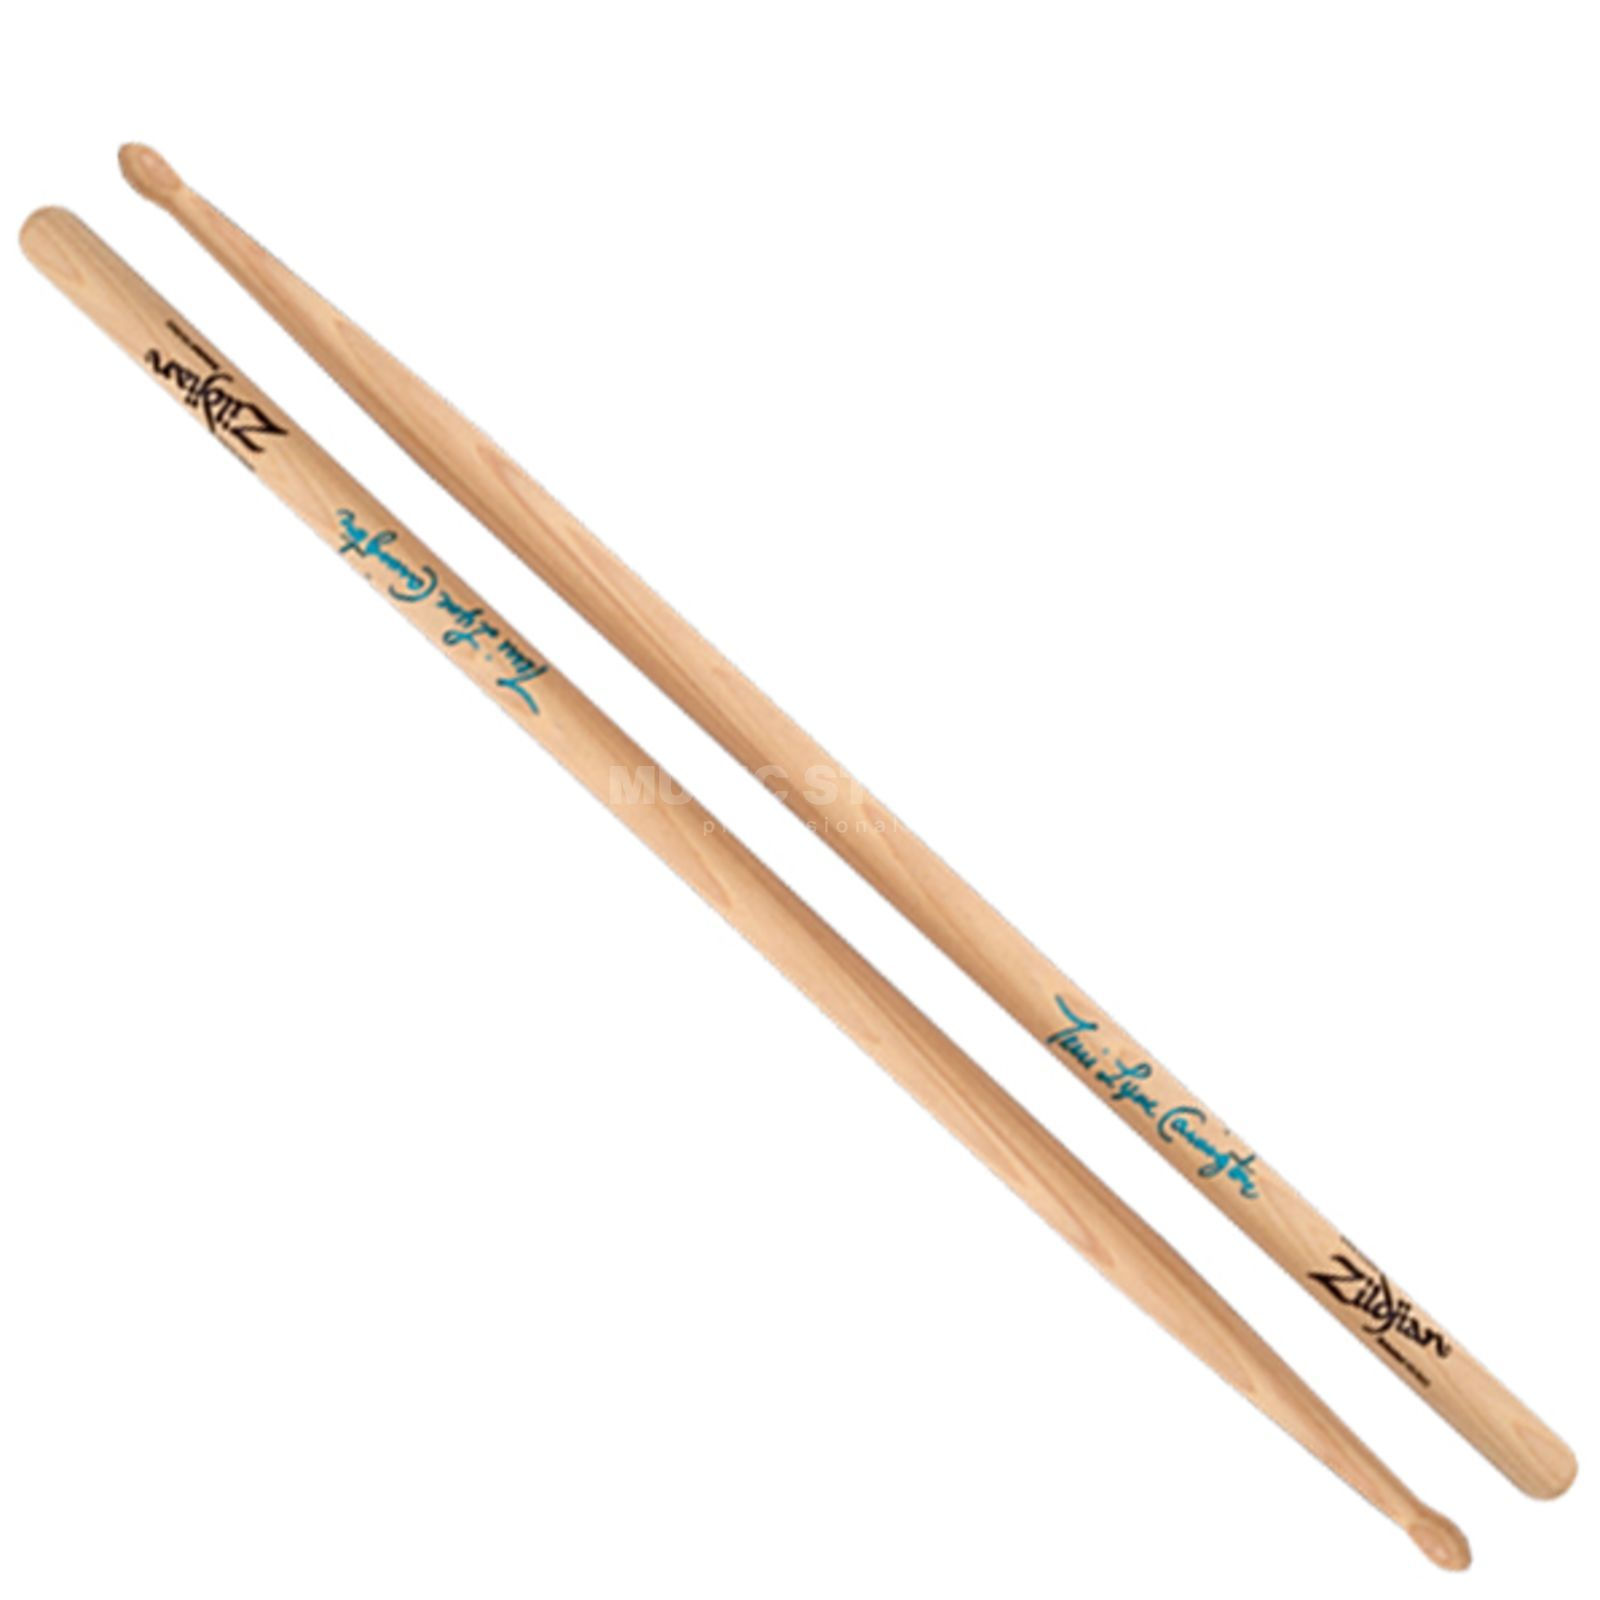 Zildjian Terri Lyne Carrington Sticks, Wood Produktbild